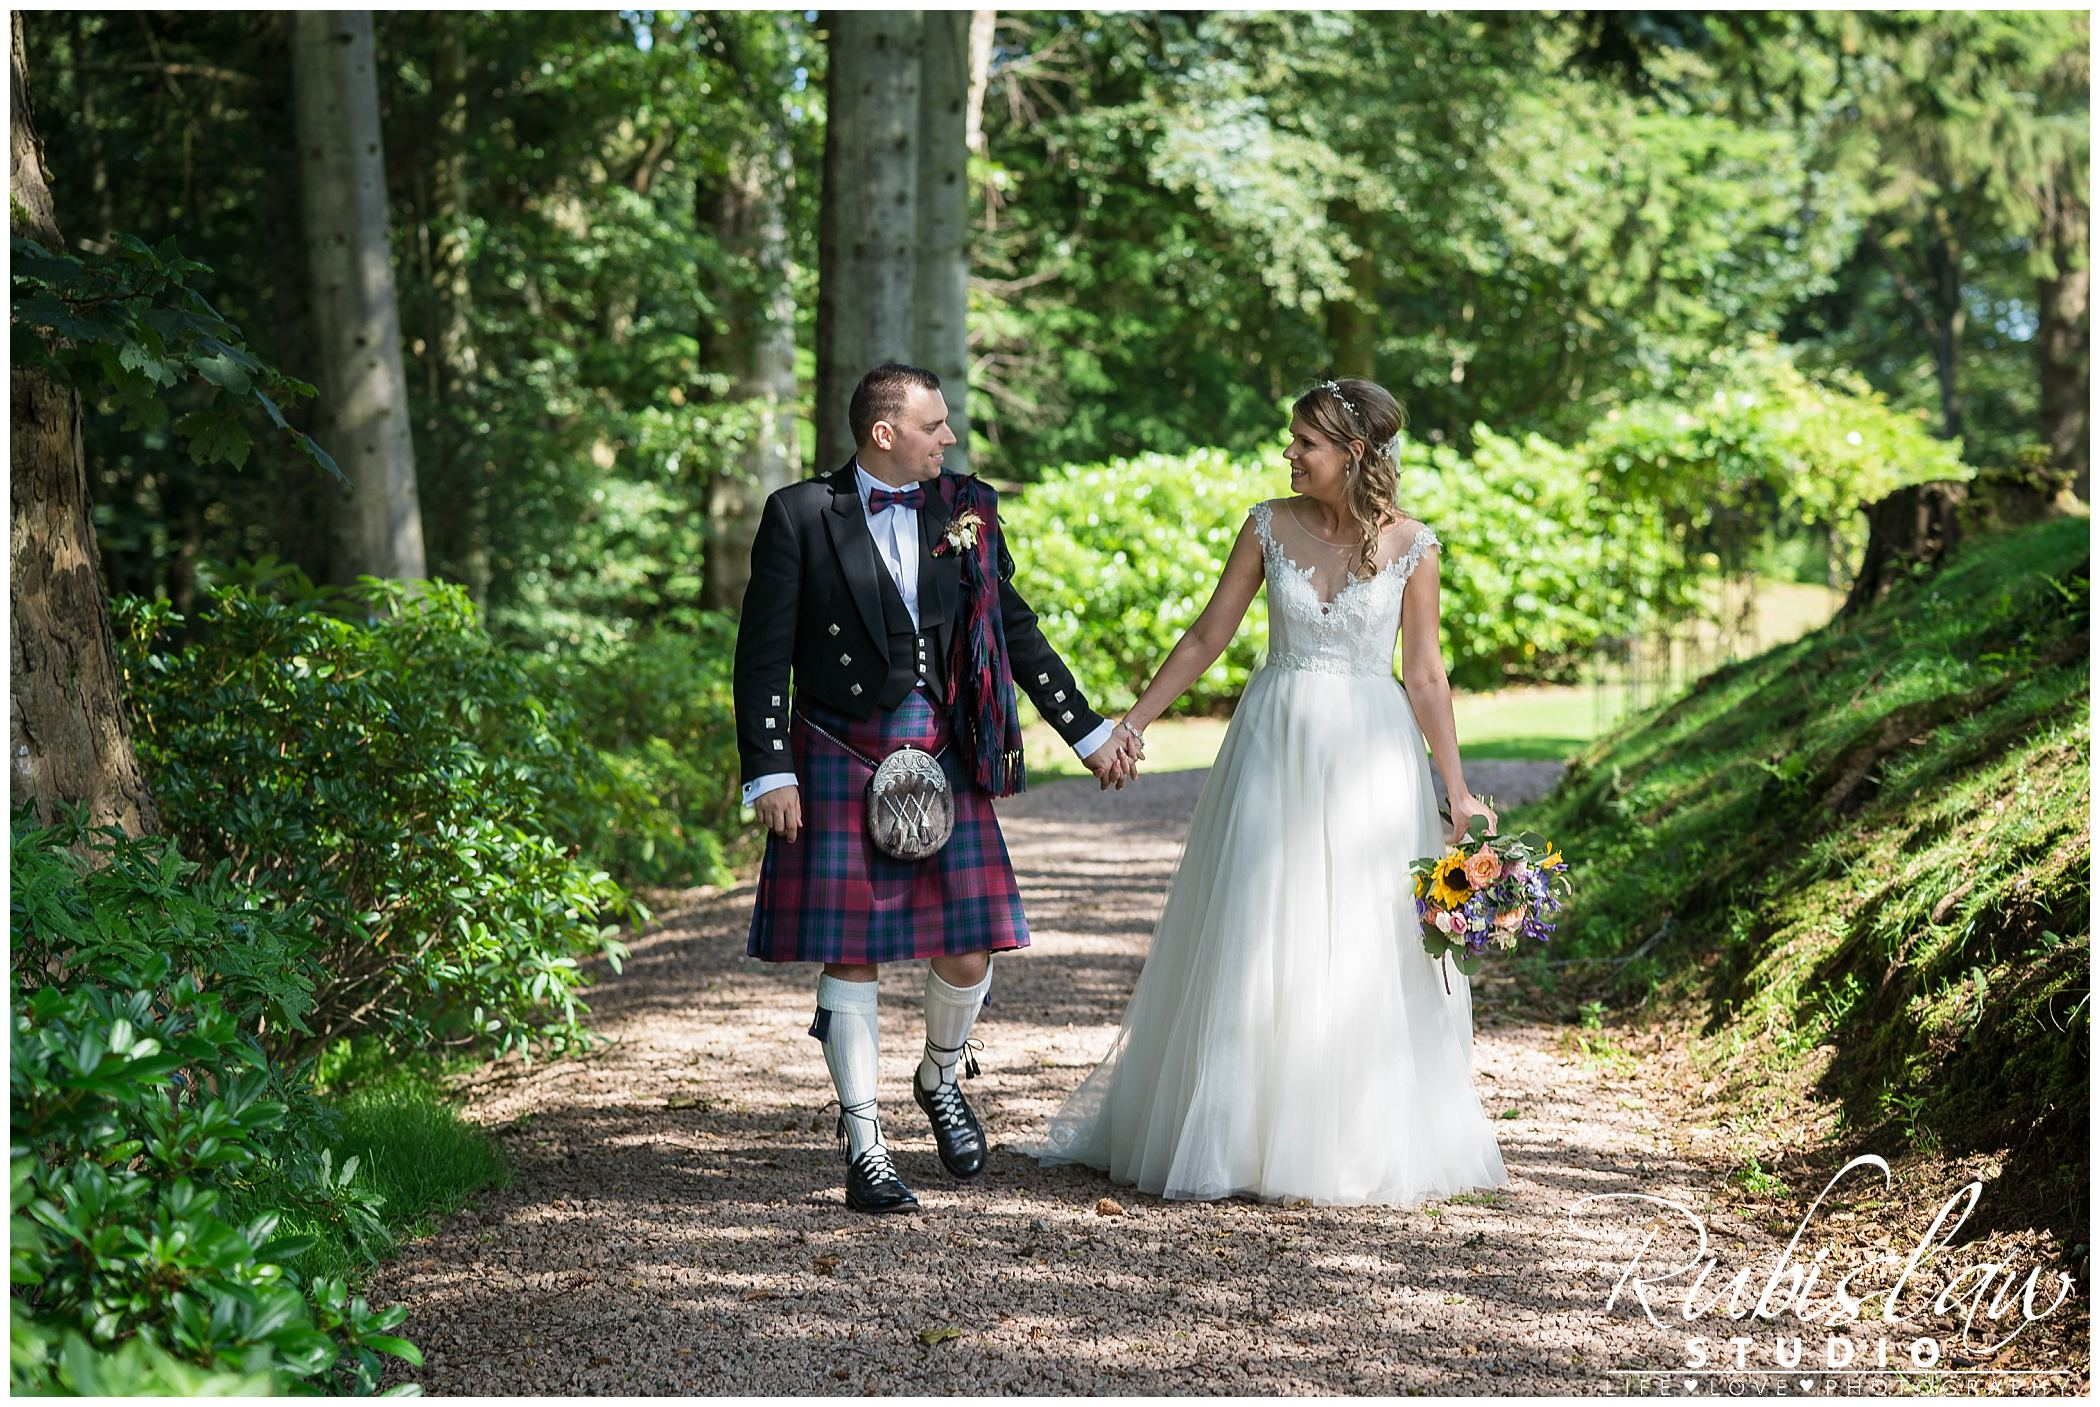 Julie and Scott at St. Machar's Cathedral and Norwood Hall